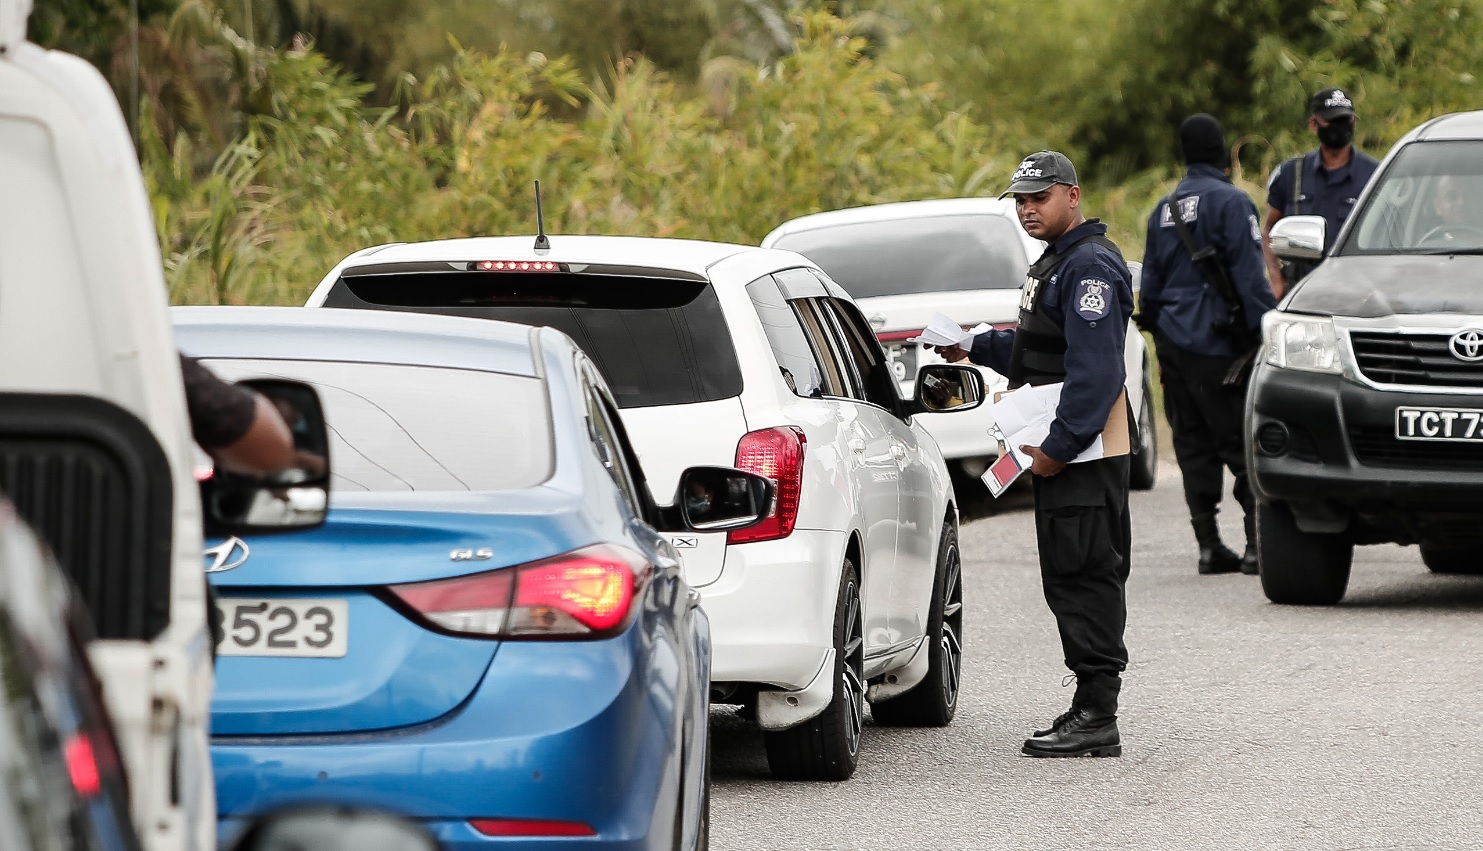 Police conduct a road exercise on Pinto Road, Arima.